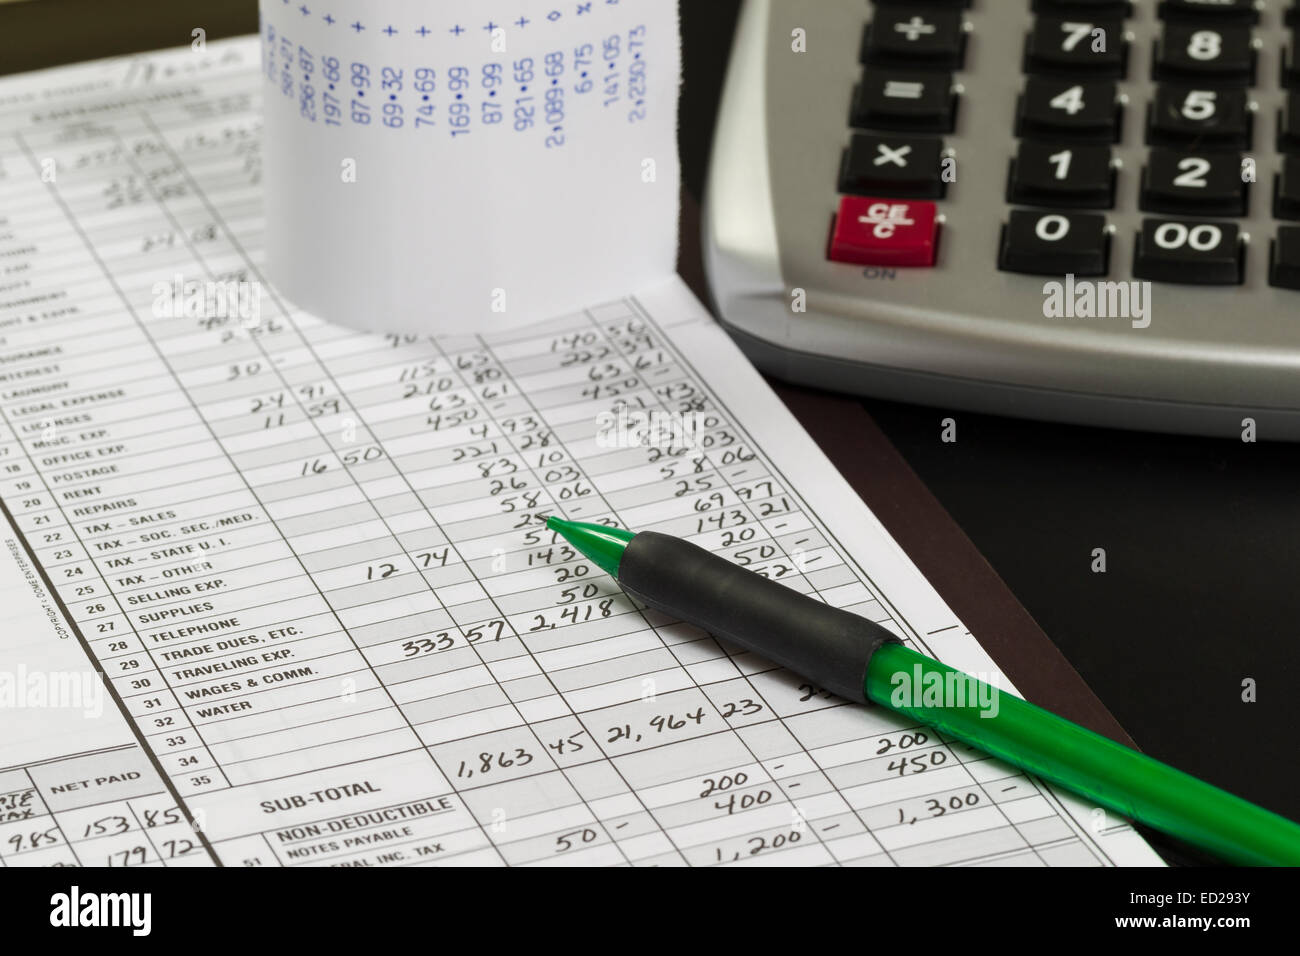 accounting ledger book stock photos  u0026 accounting ledger